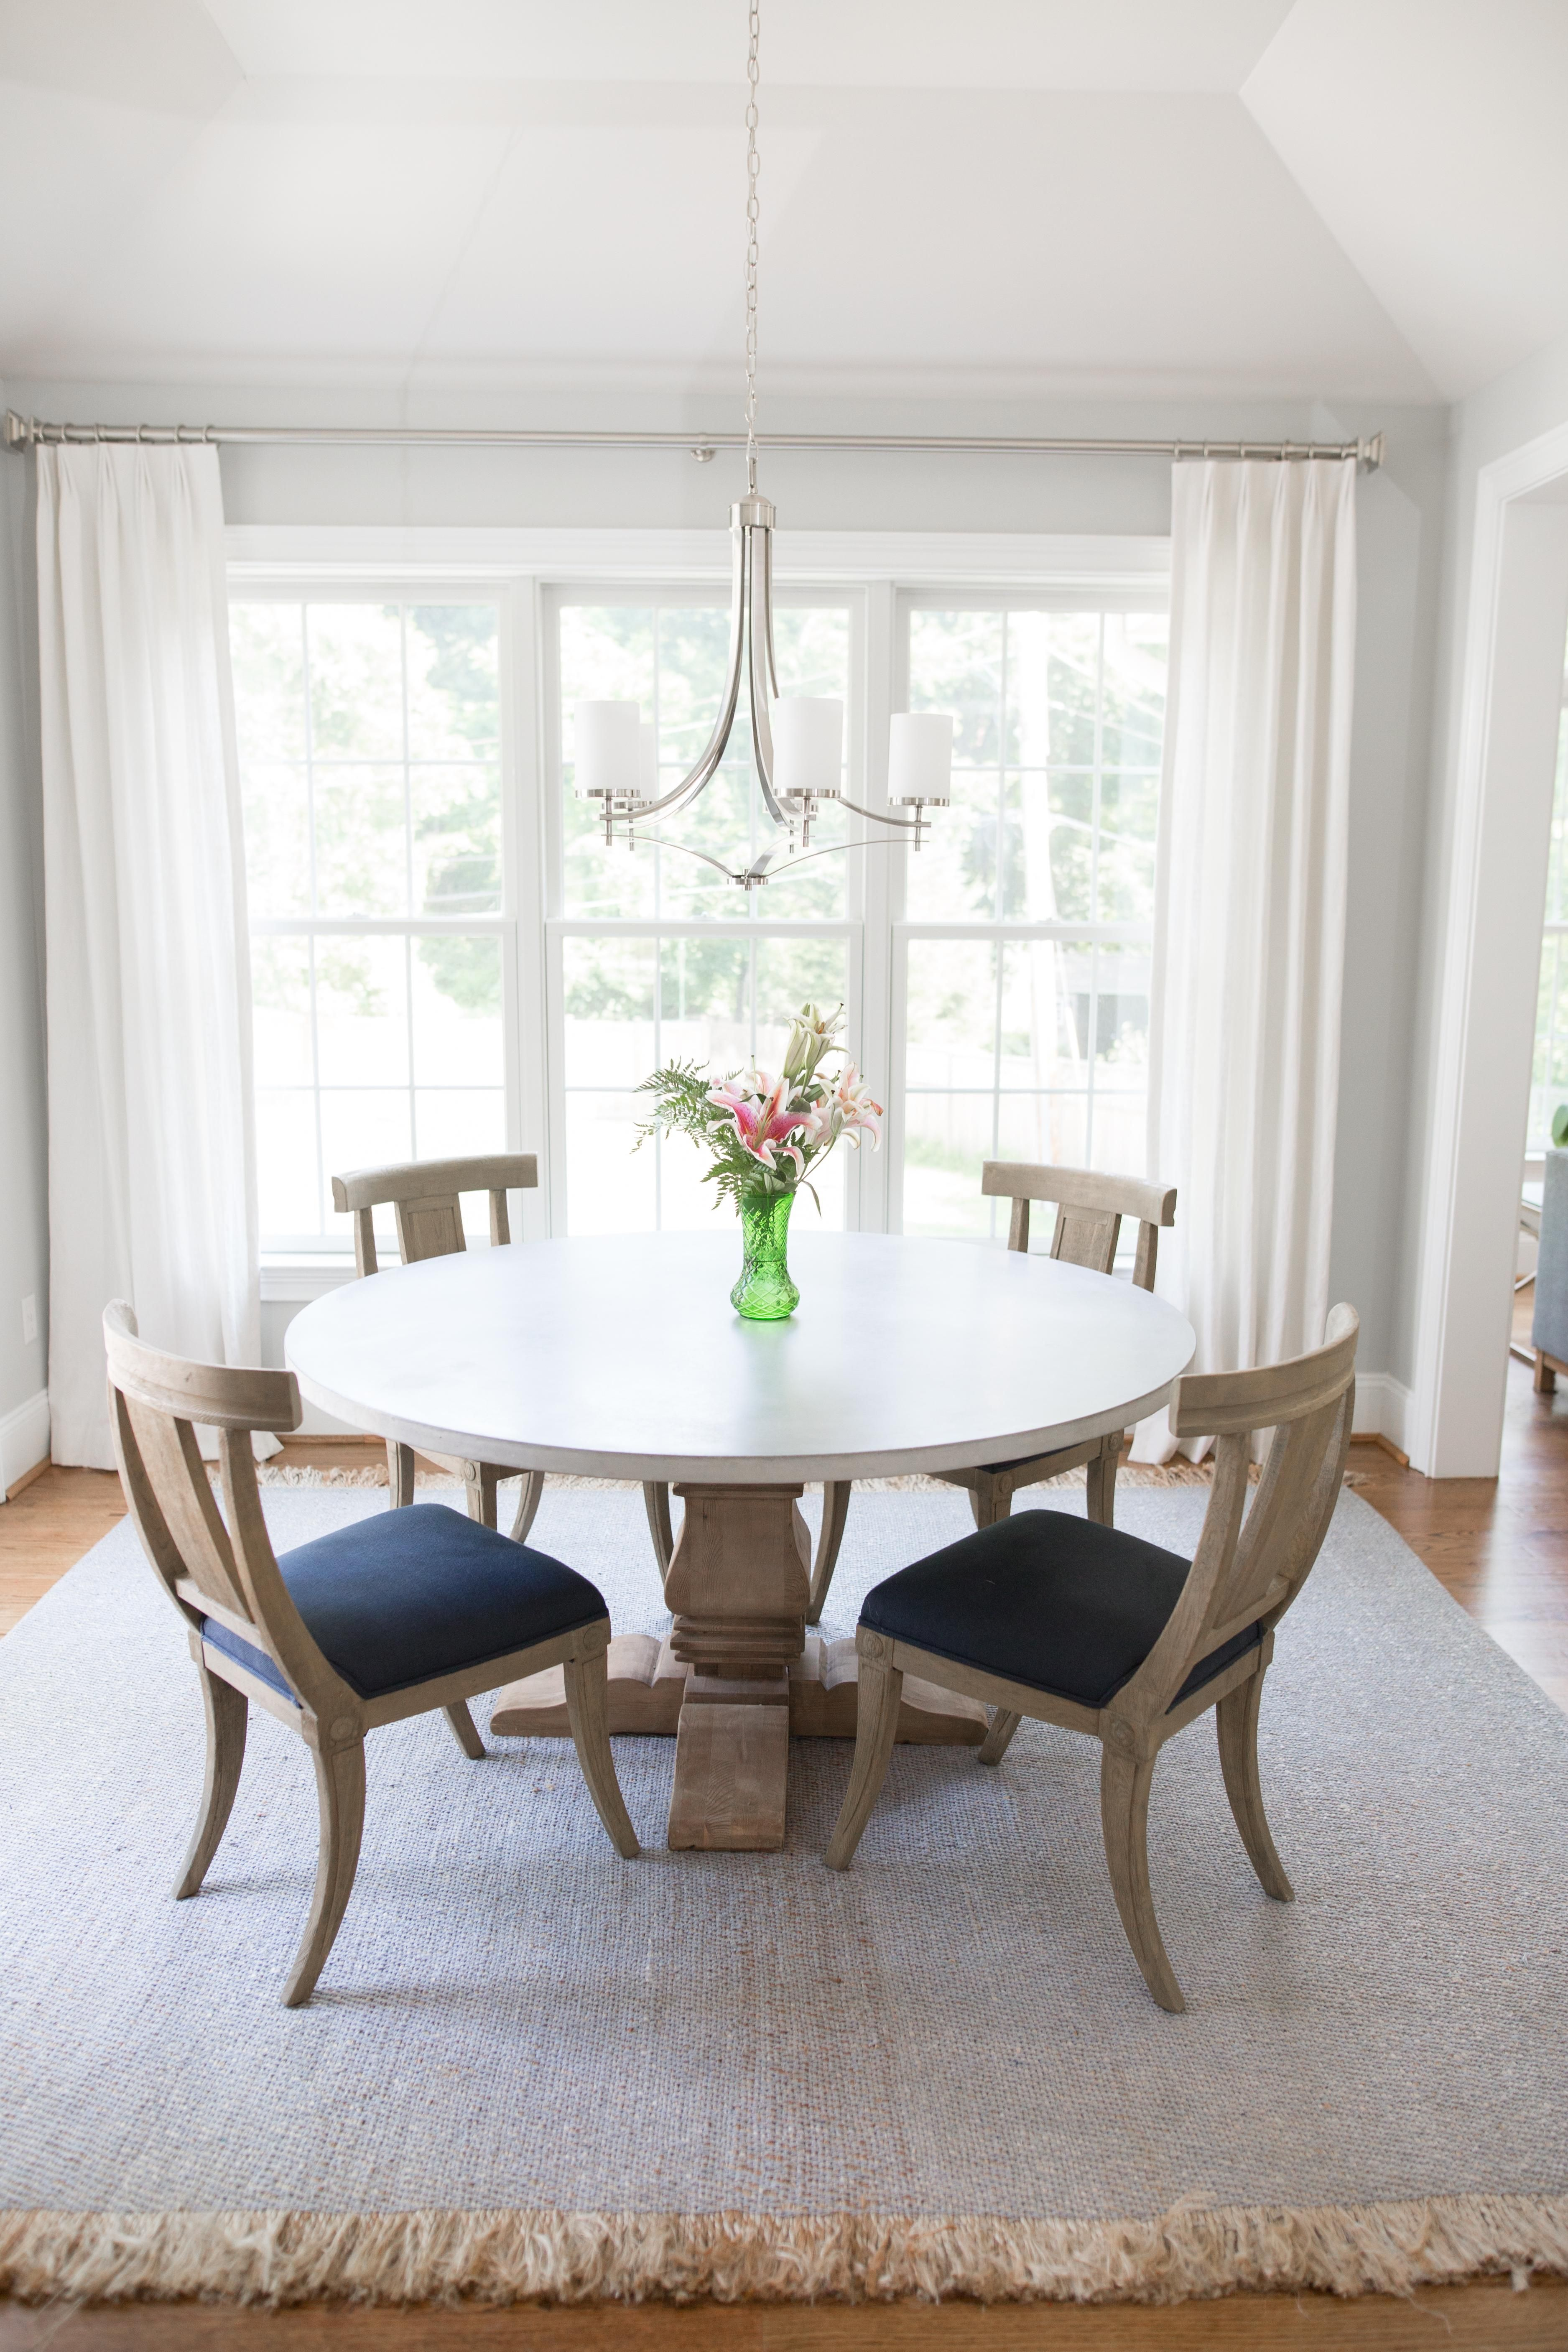 Dining room window coverings  main line window treatments  home  pinterest  urban loft window